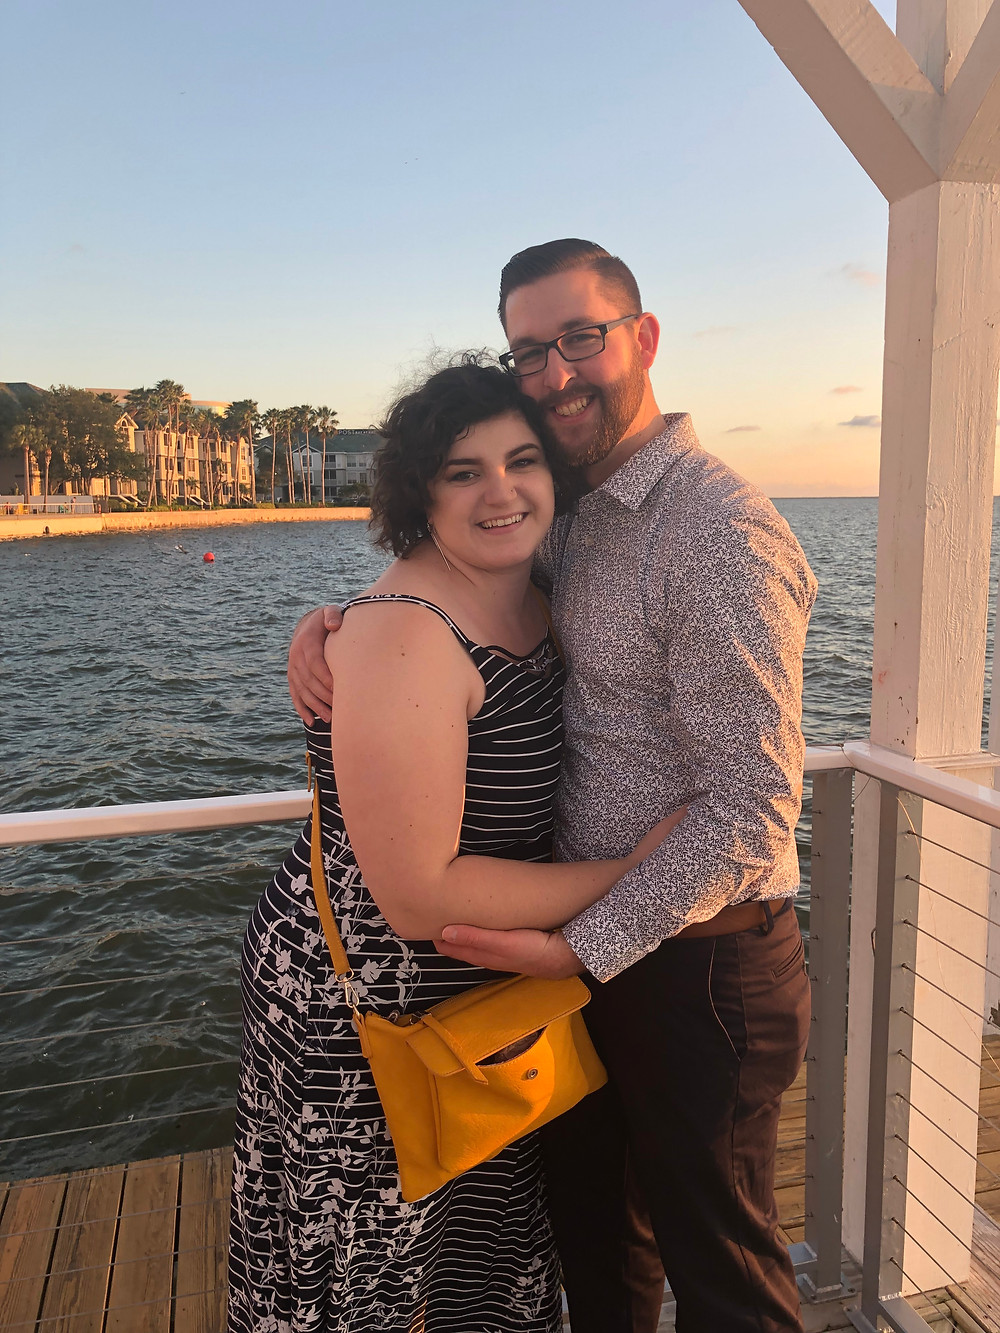 A man and woman hug on a deck in Tampa FL